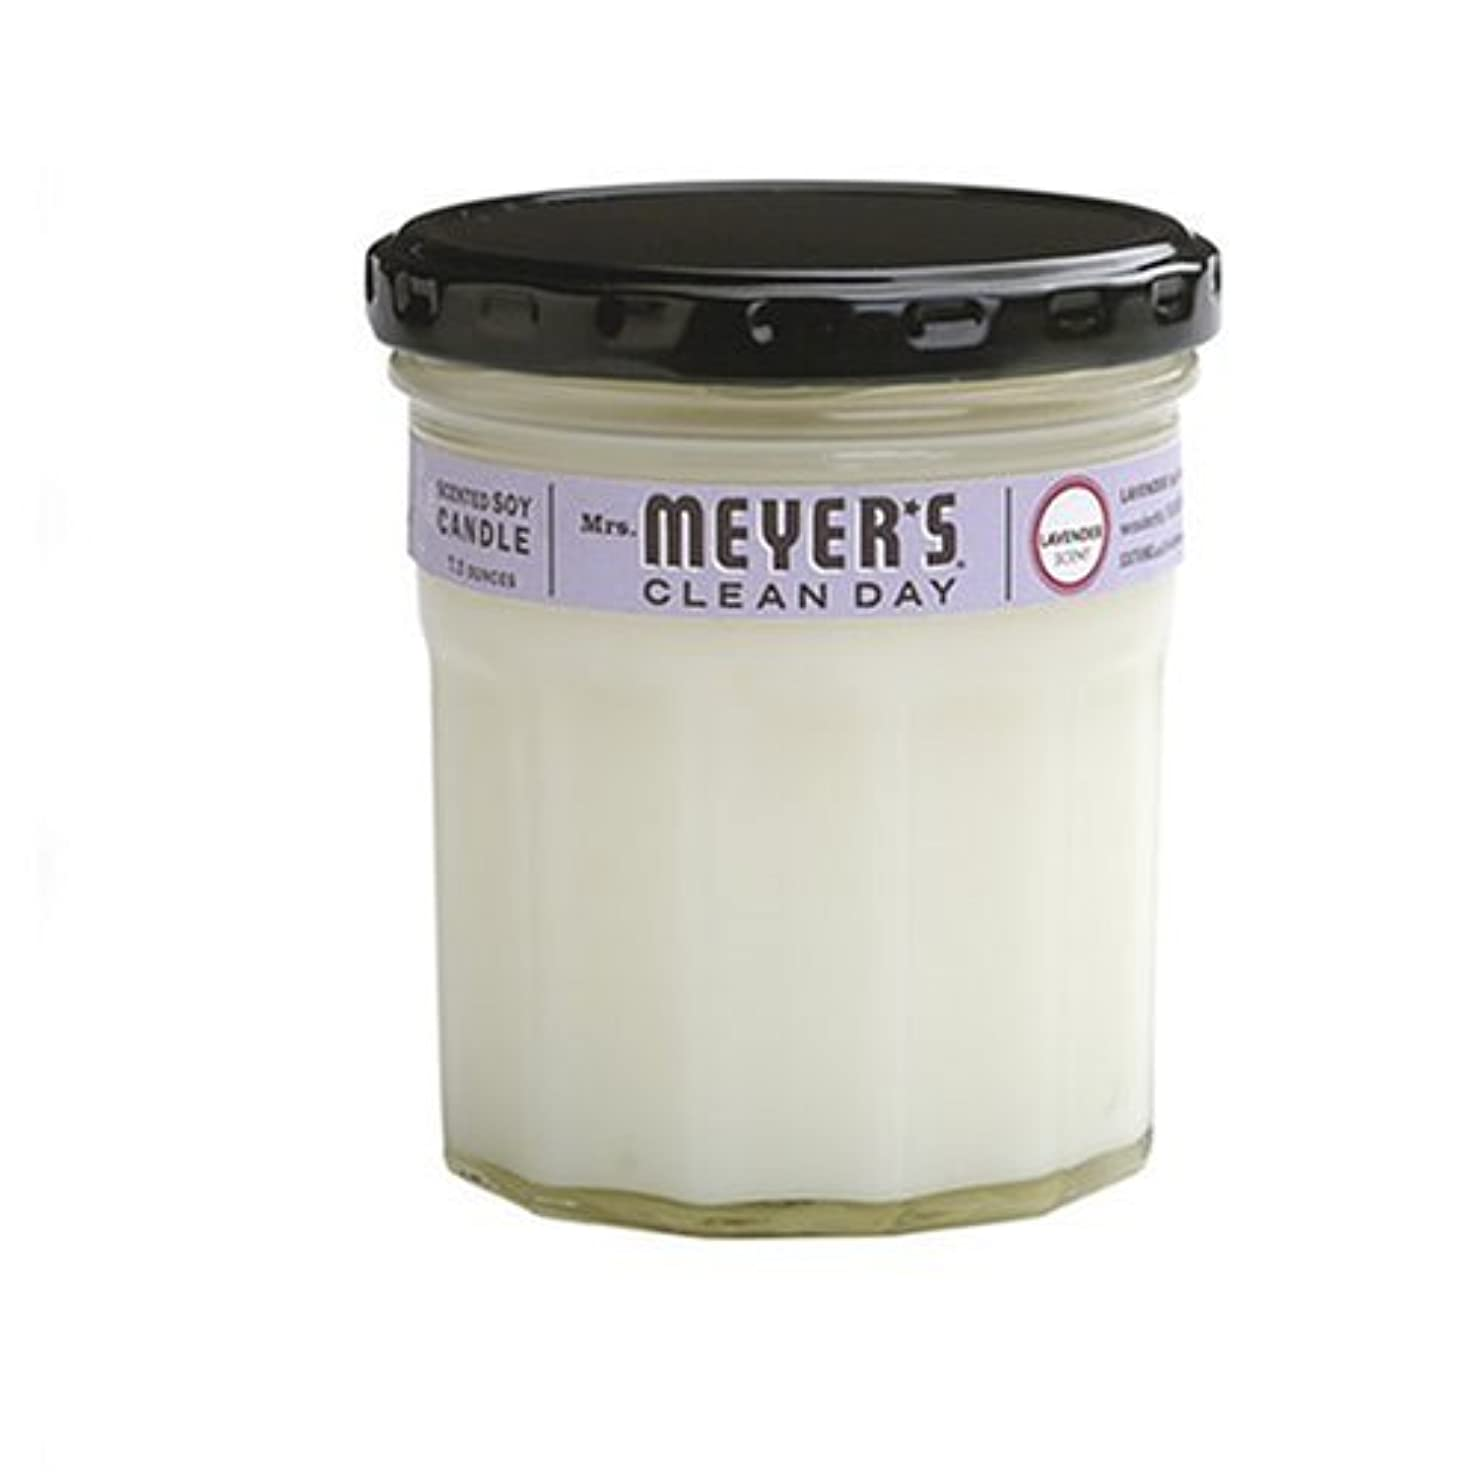 ボトルなす透過性Mrs. Meyer's Clean Day Soy Candle, Lavender, 7.2 Ounce Glass Jar [並行輸入品]